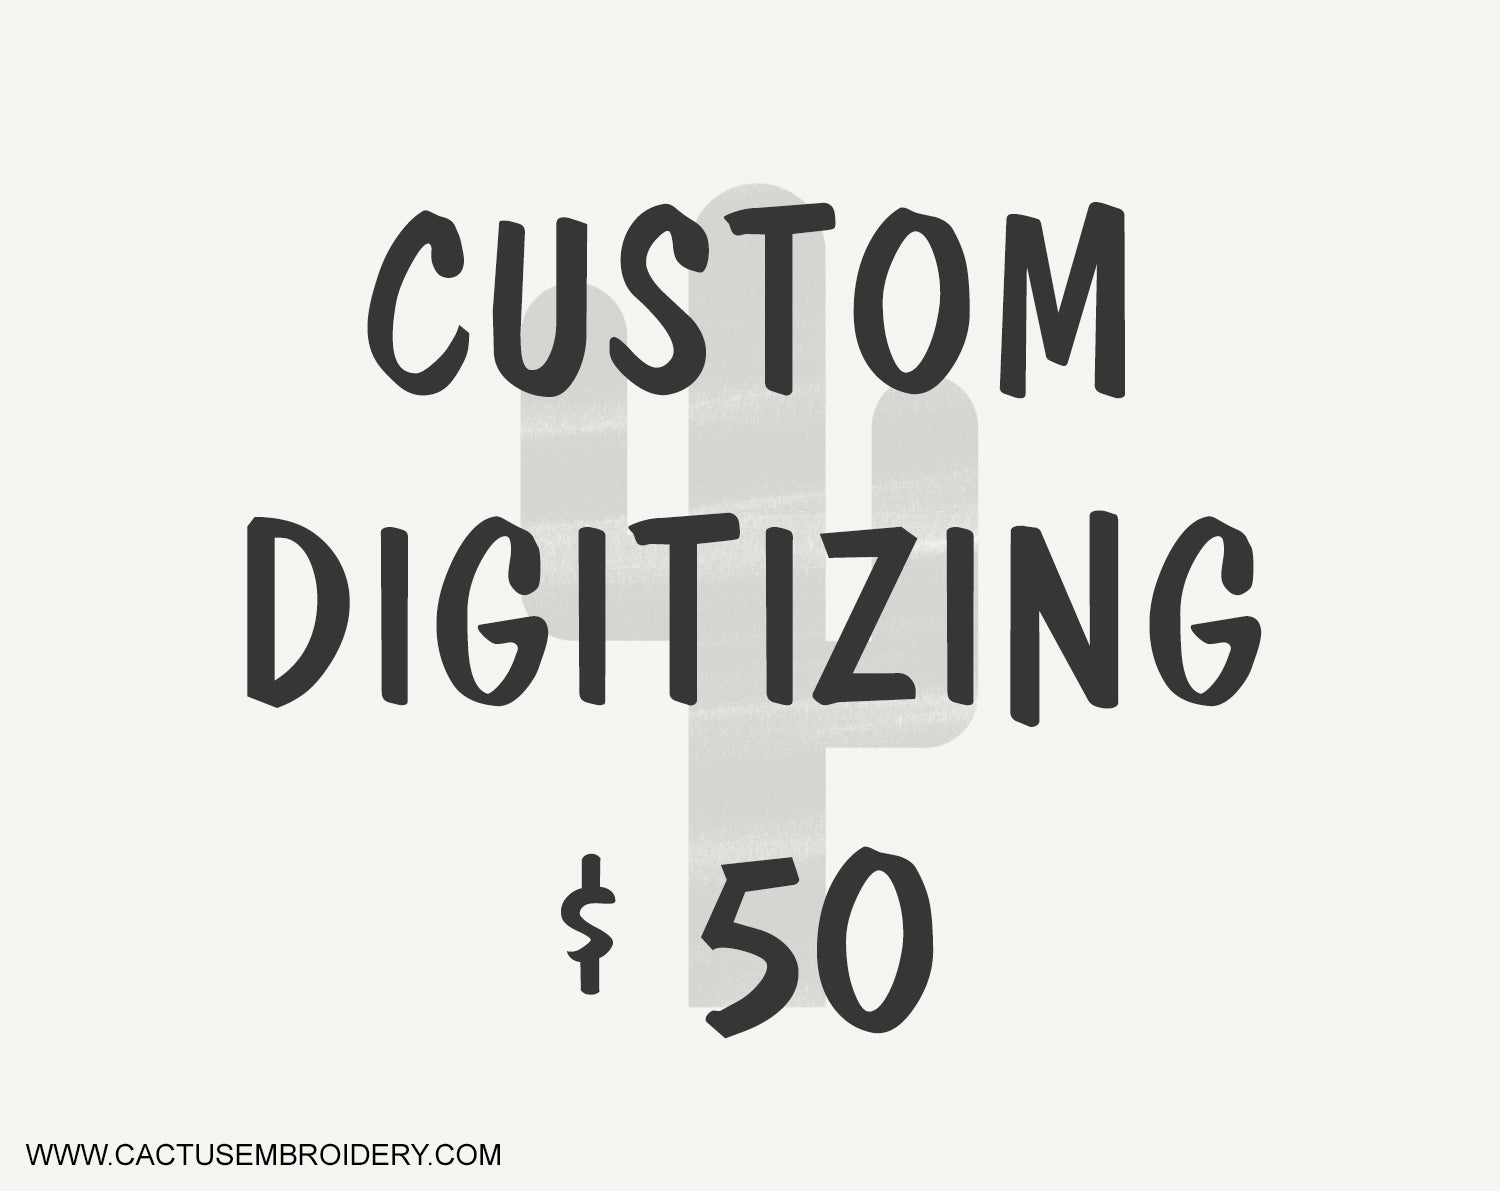 Custom Digitizing, Your logo digitized $50